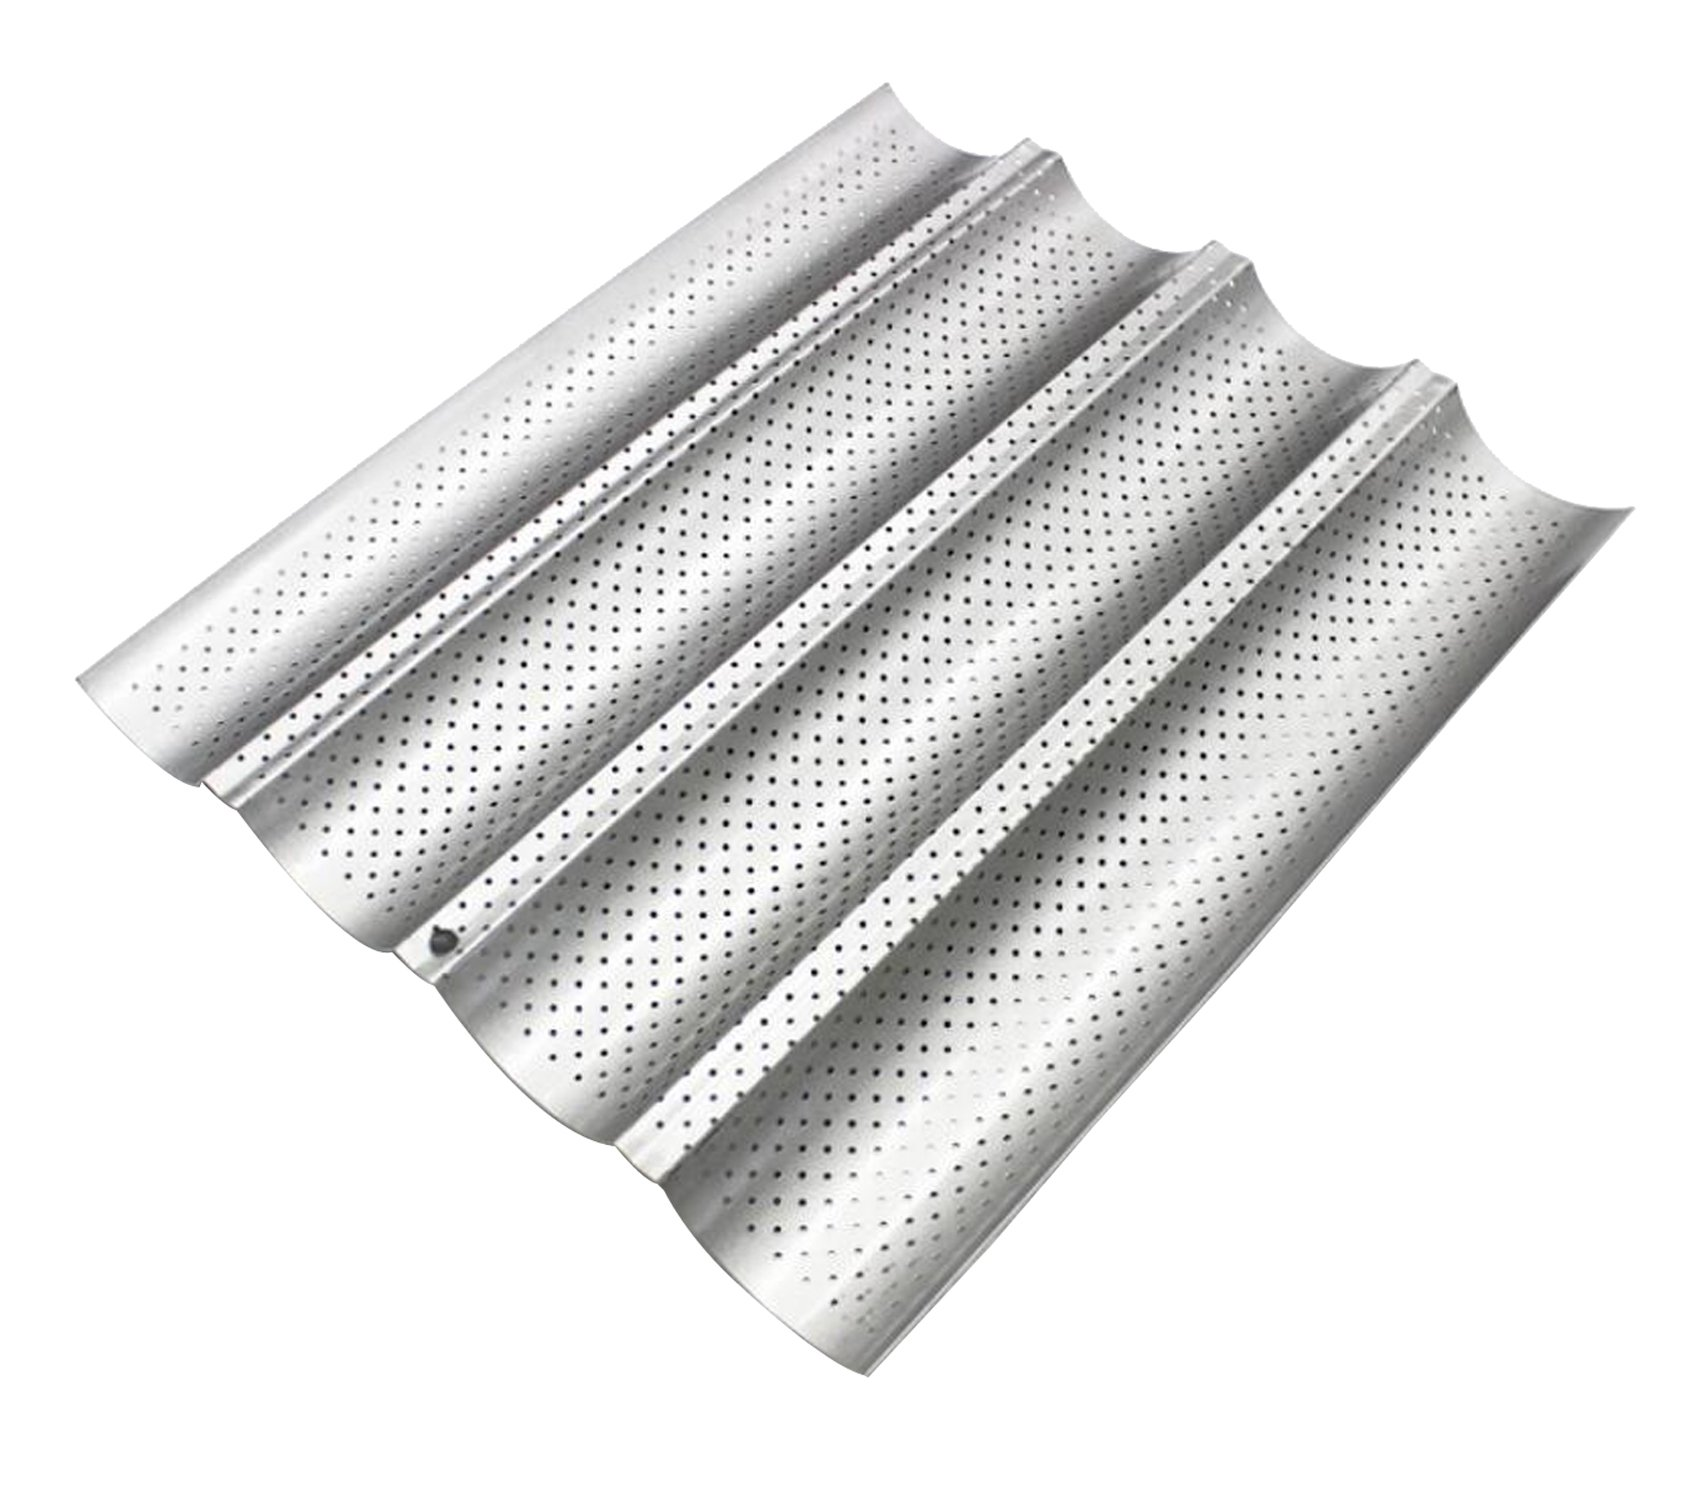 Four Groove French Bread Pan, KOOTIPS Non-stick Perforated Baguette Pan French Italian Bread Pan Wave Loaf Bake Mold Board Subway Mold Tins Basket Tray Cloche Molds Pans Sheet Baker Baking (Silver) by KOOTIPS